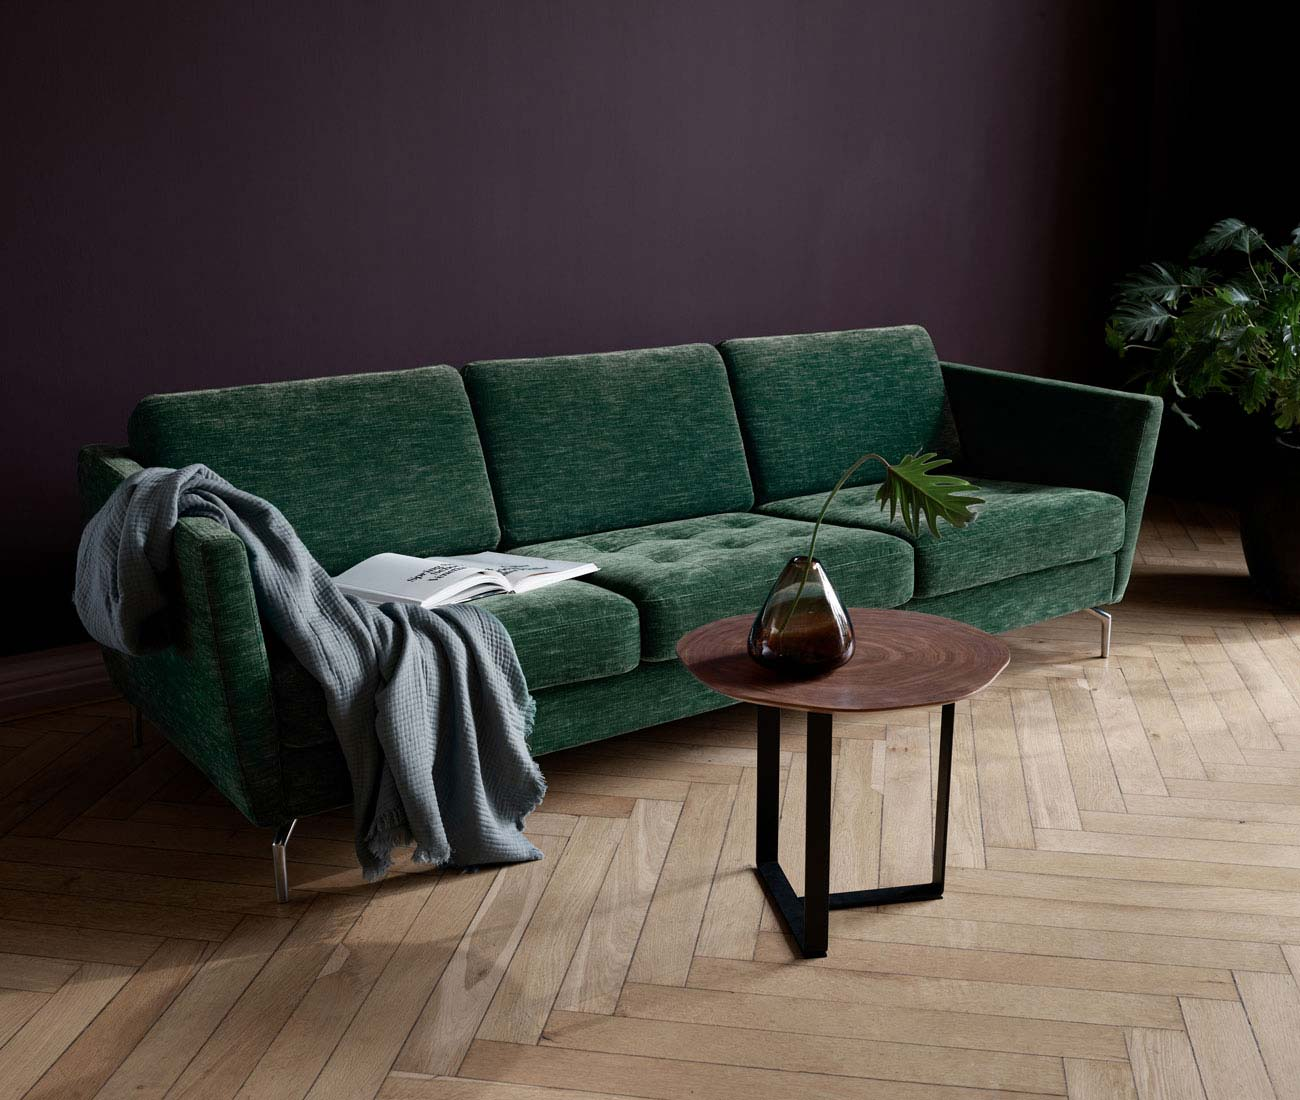 3 seater designer sofa by BoConcept